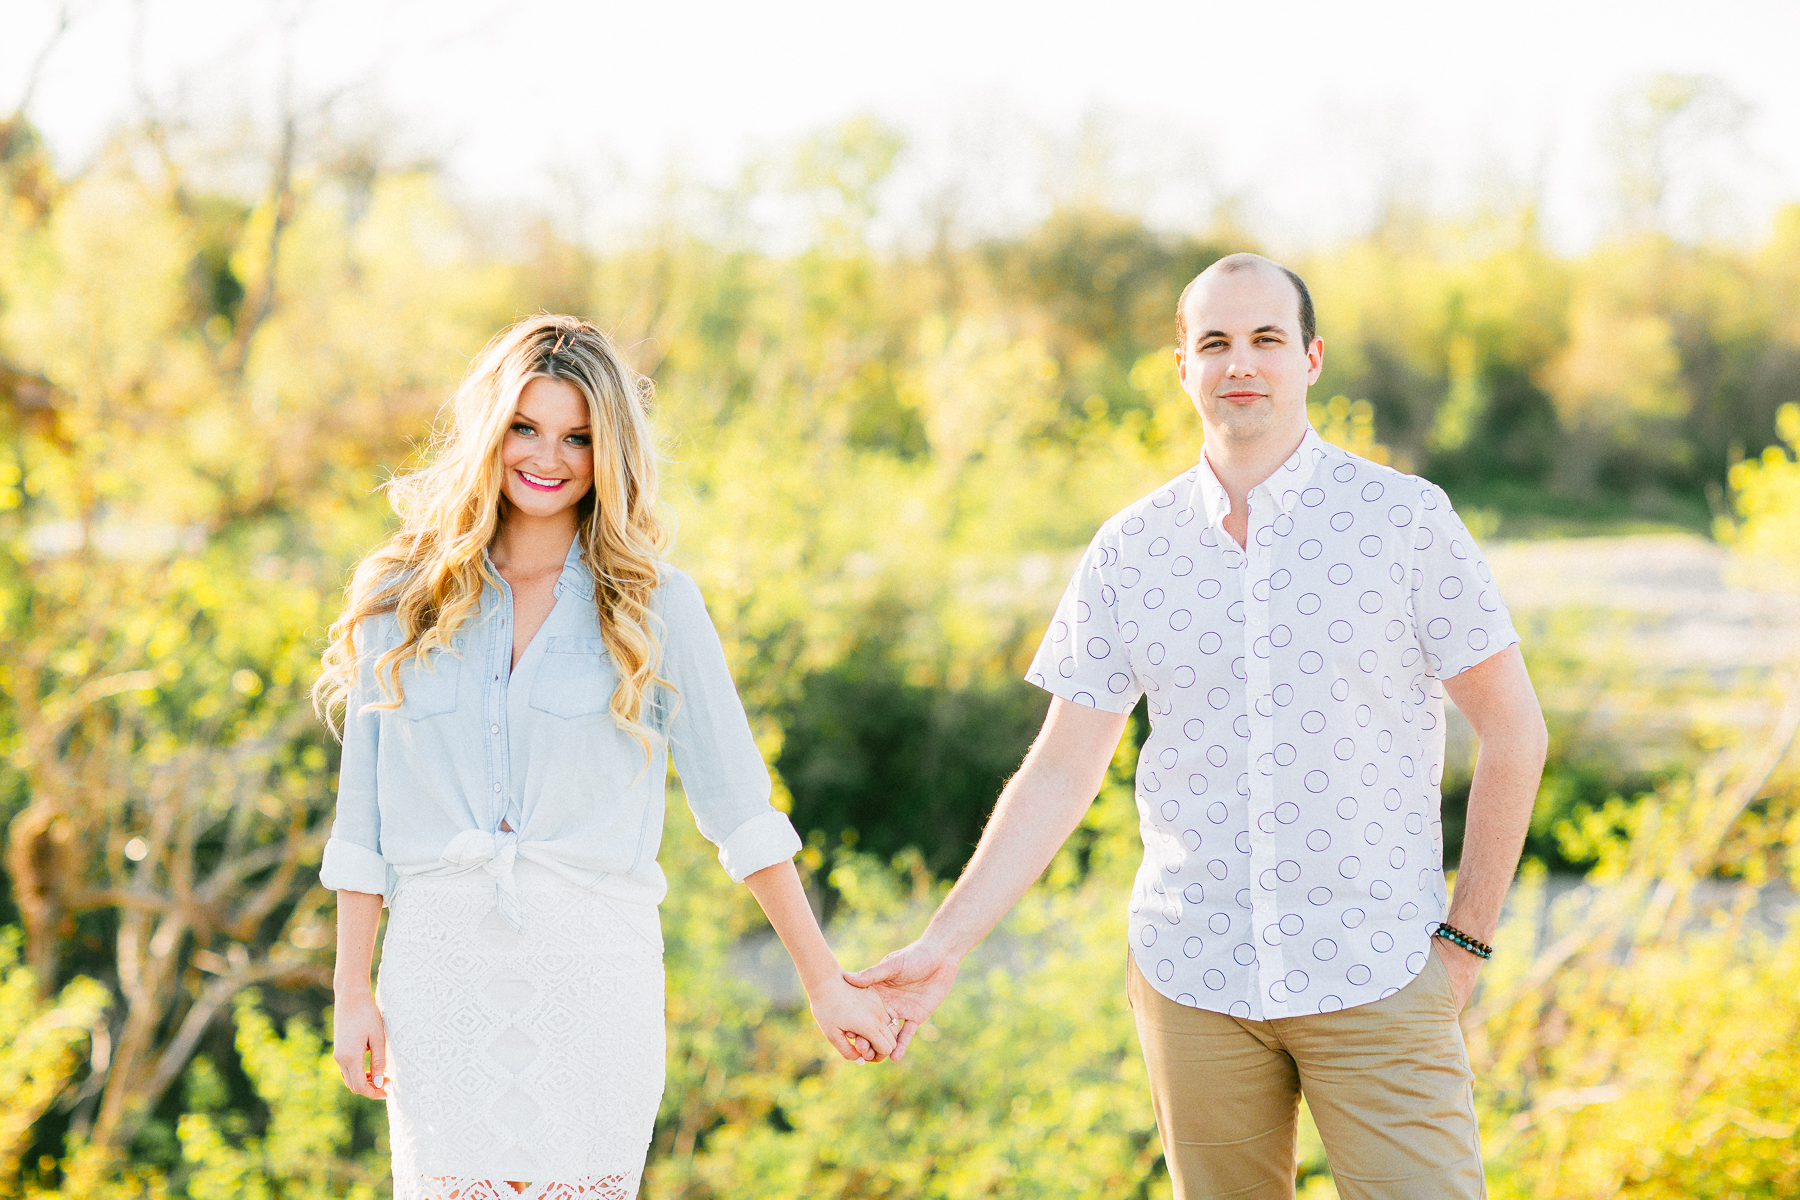 sharrock_engagements-0903.jpg